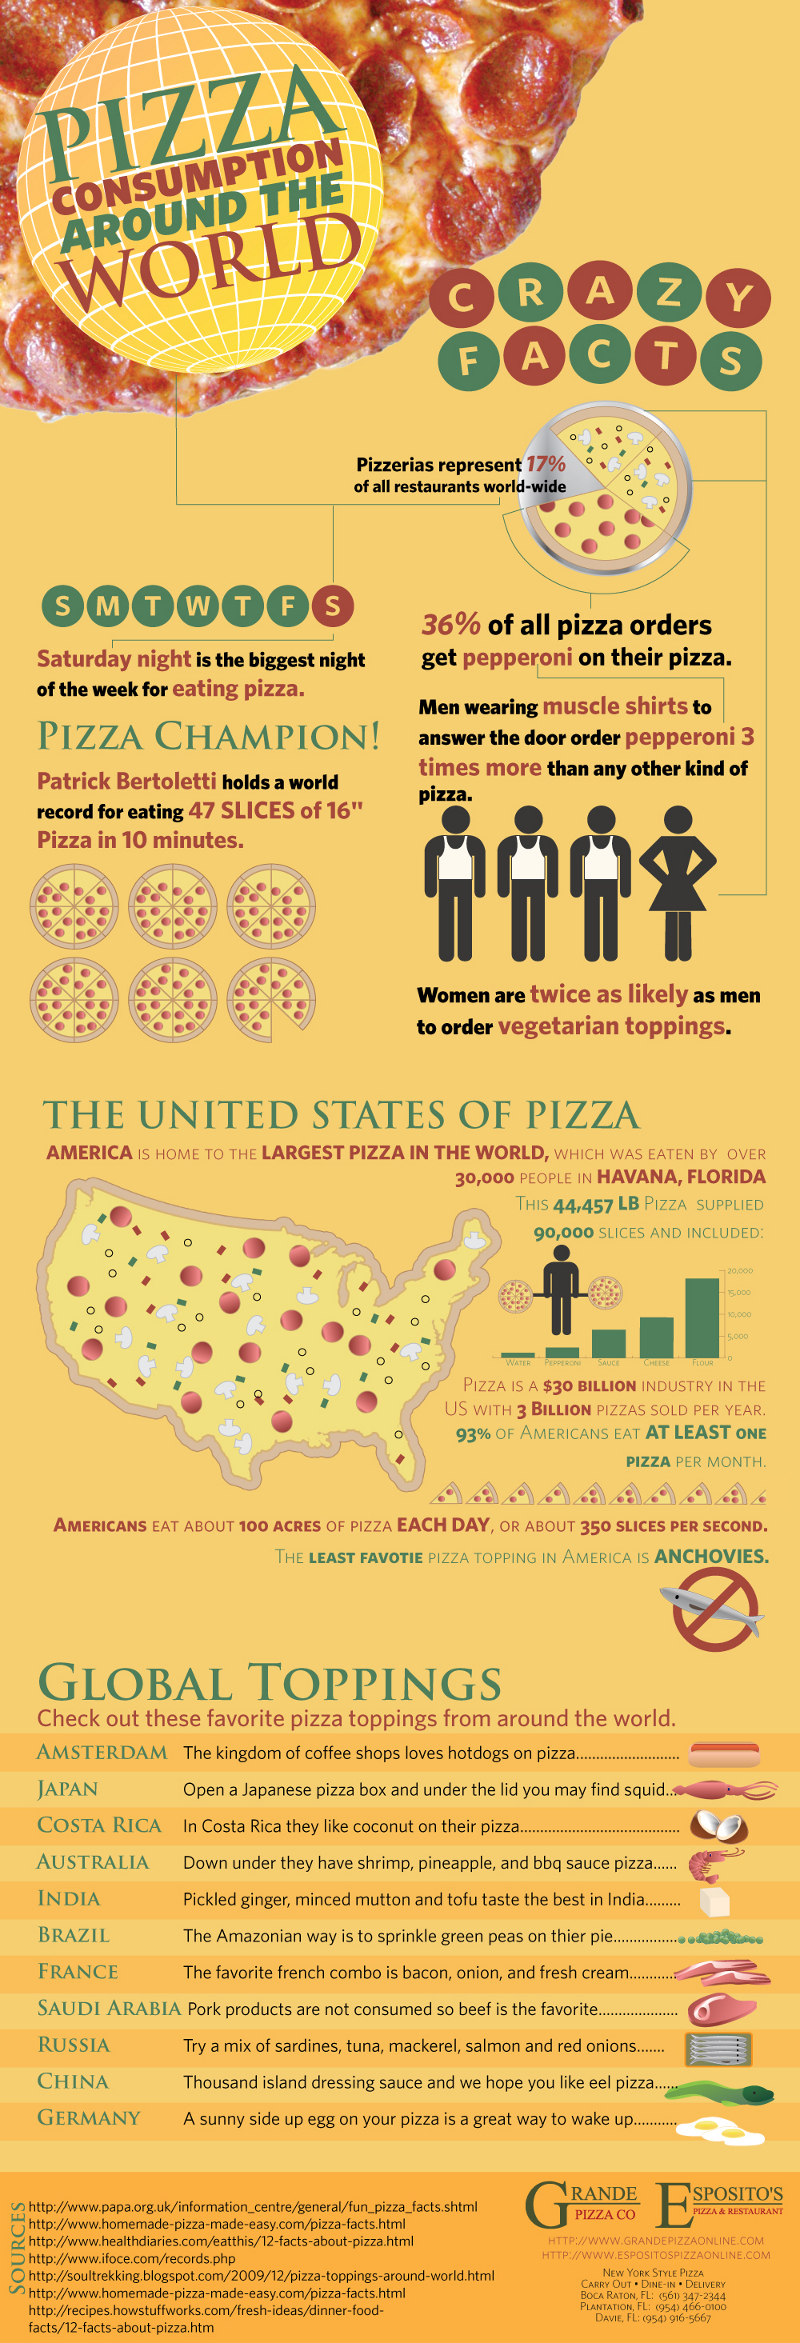 Pizza Consumption